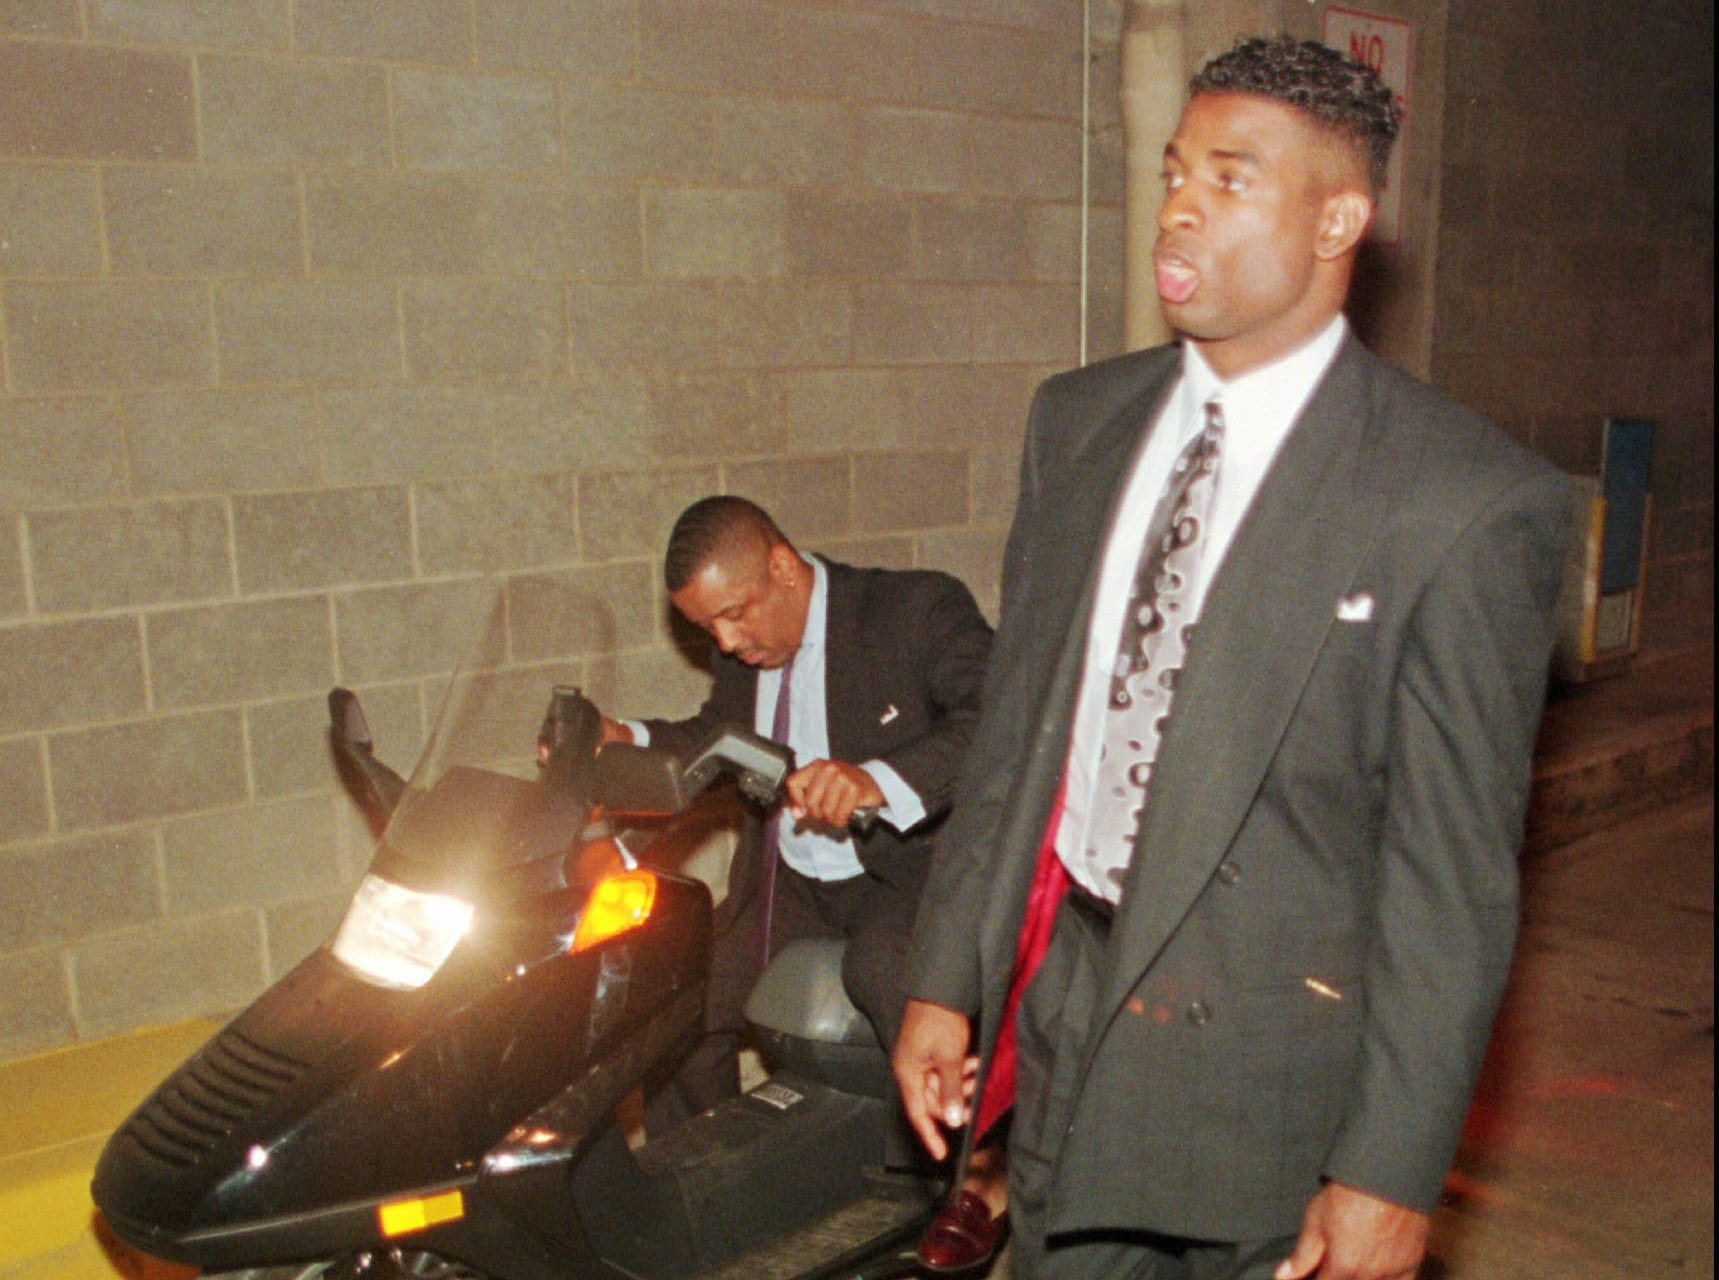 """Text: Cincinnati Reds outfielder Deion Sanders walks along behind the jury, while Sports Marketing agent Wayne """"Box"""" Miller parks the scooter Sanders was riding Aug. 8, 1994, as they tour the scene of the motor scooter incident at Riverfront Stadium in Cincinnati Monday, May 22, 1995. The charges, all misdemeanors, stem from an alleged incident on Aug. 8 involving an off-duty Cincinnati police officer working in uniform as a security guard at Riverfront Stadium. The charges include resisting arrest, driving without a license, failure to comply and leaving the scene of an accident. (AP Photo/Tom Uhlman)"""